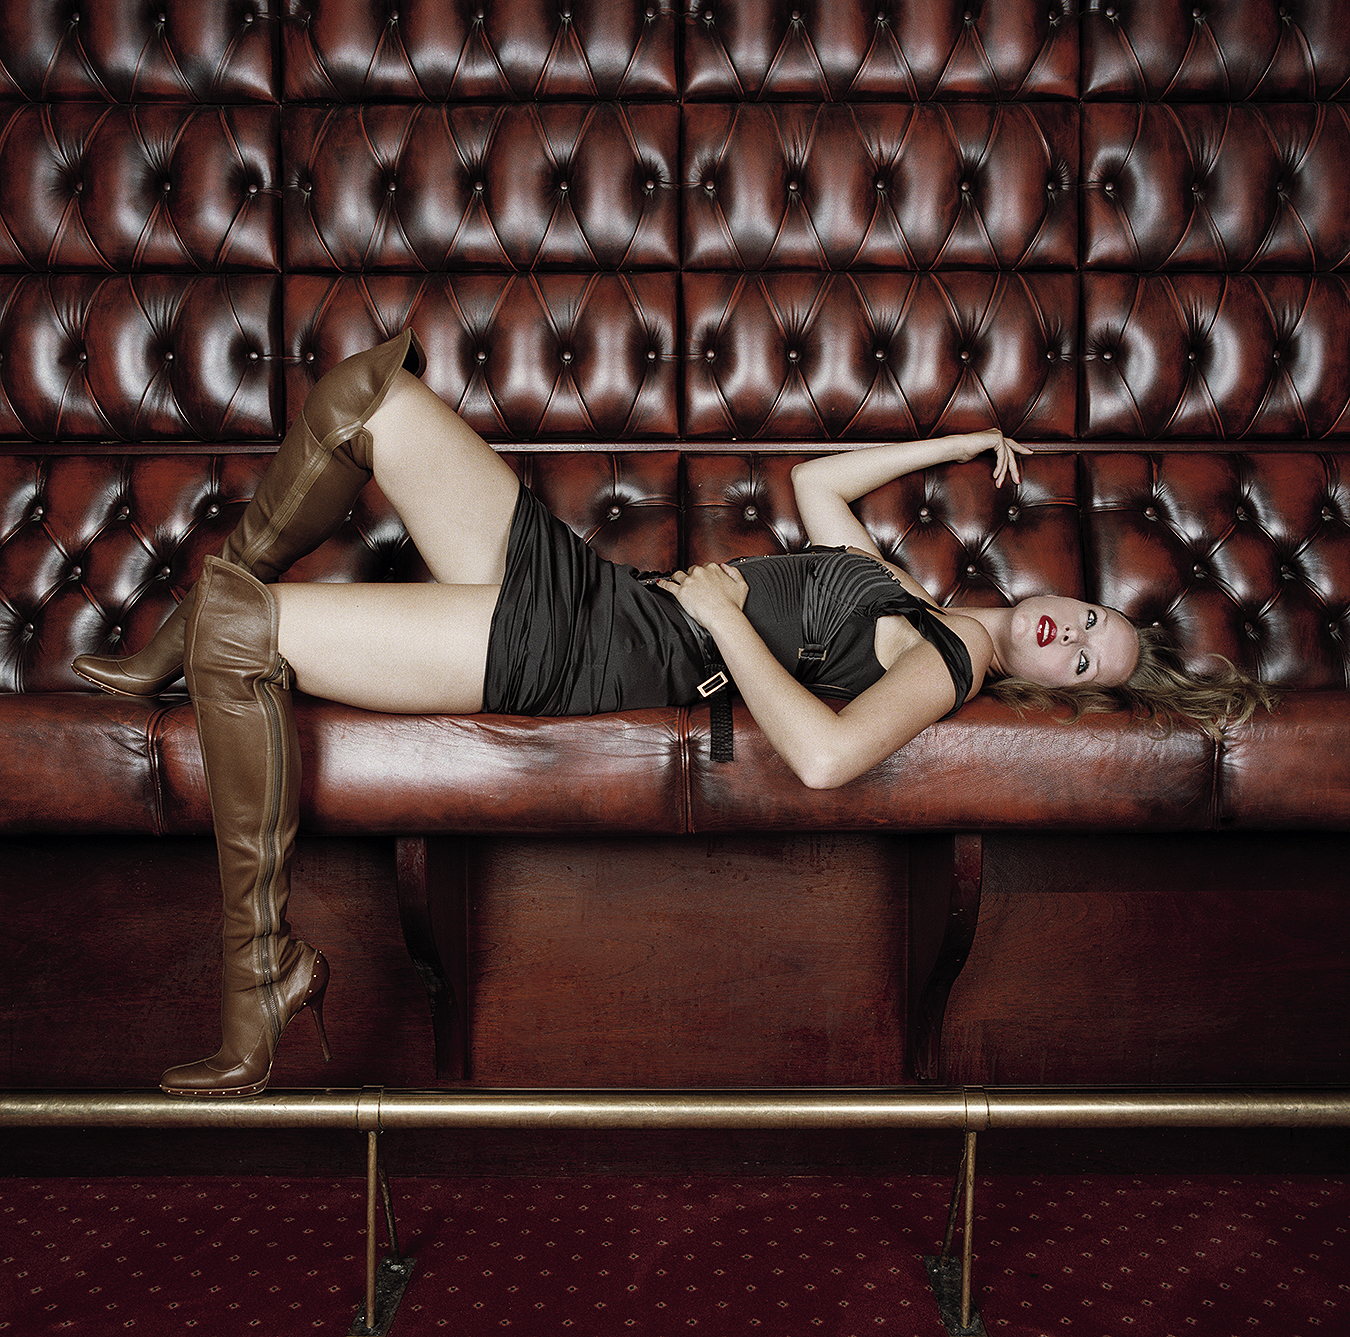 Tony_Ward_fashion_photography_Dutch_model_Esther_Young_lounging_brown_knee_high_leather_boots